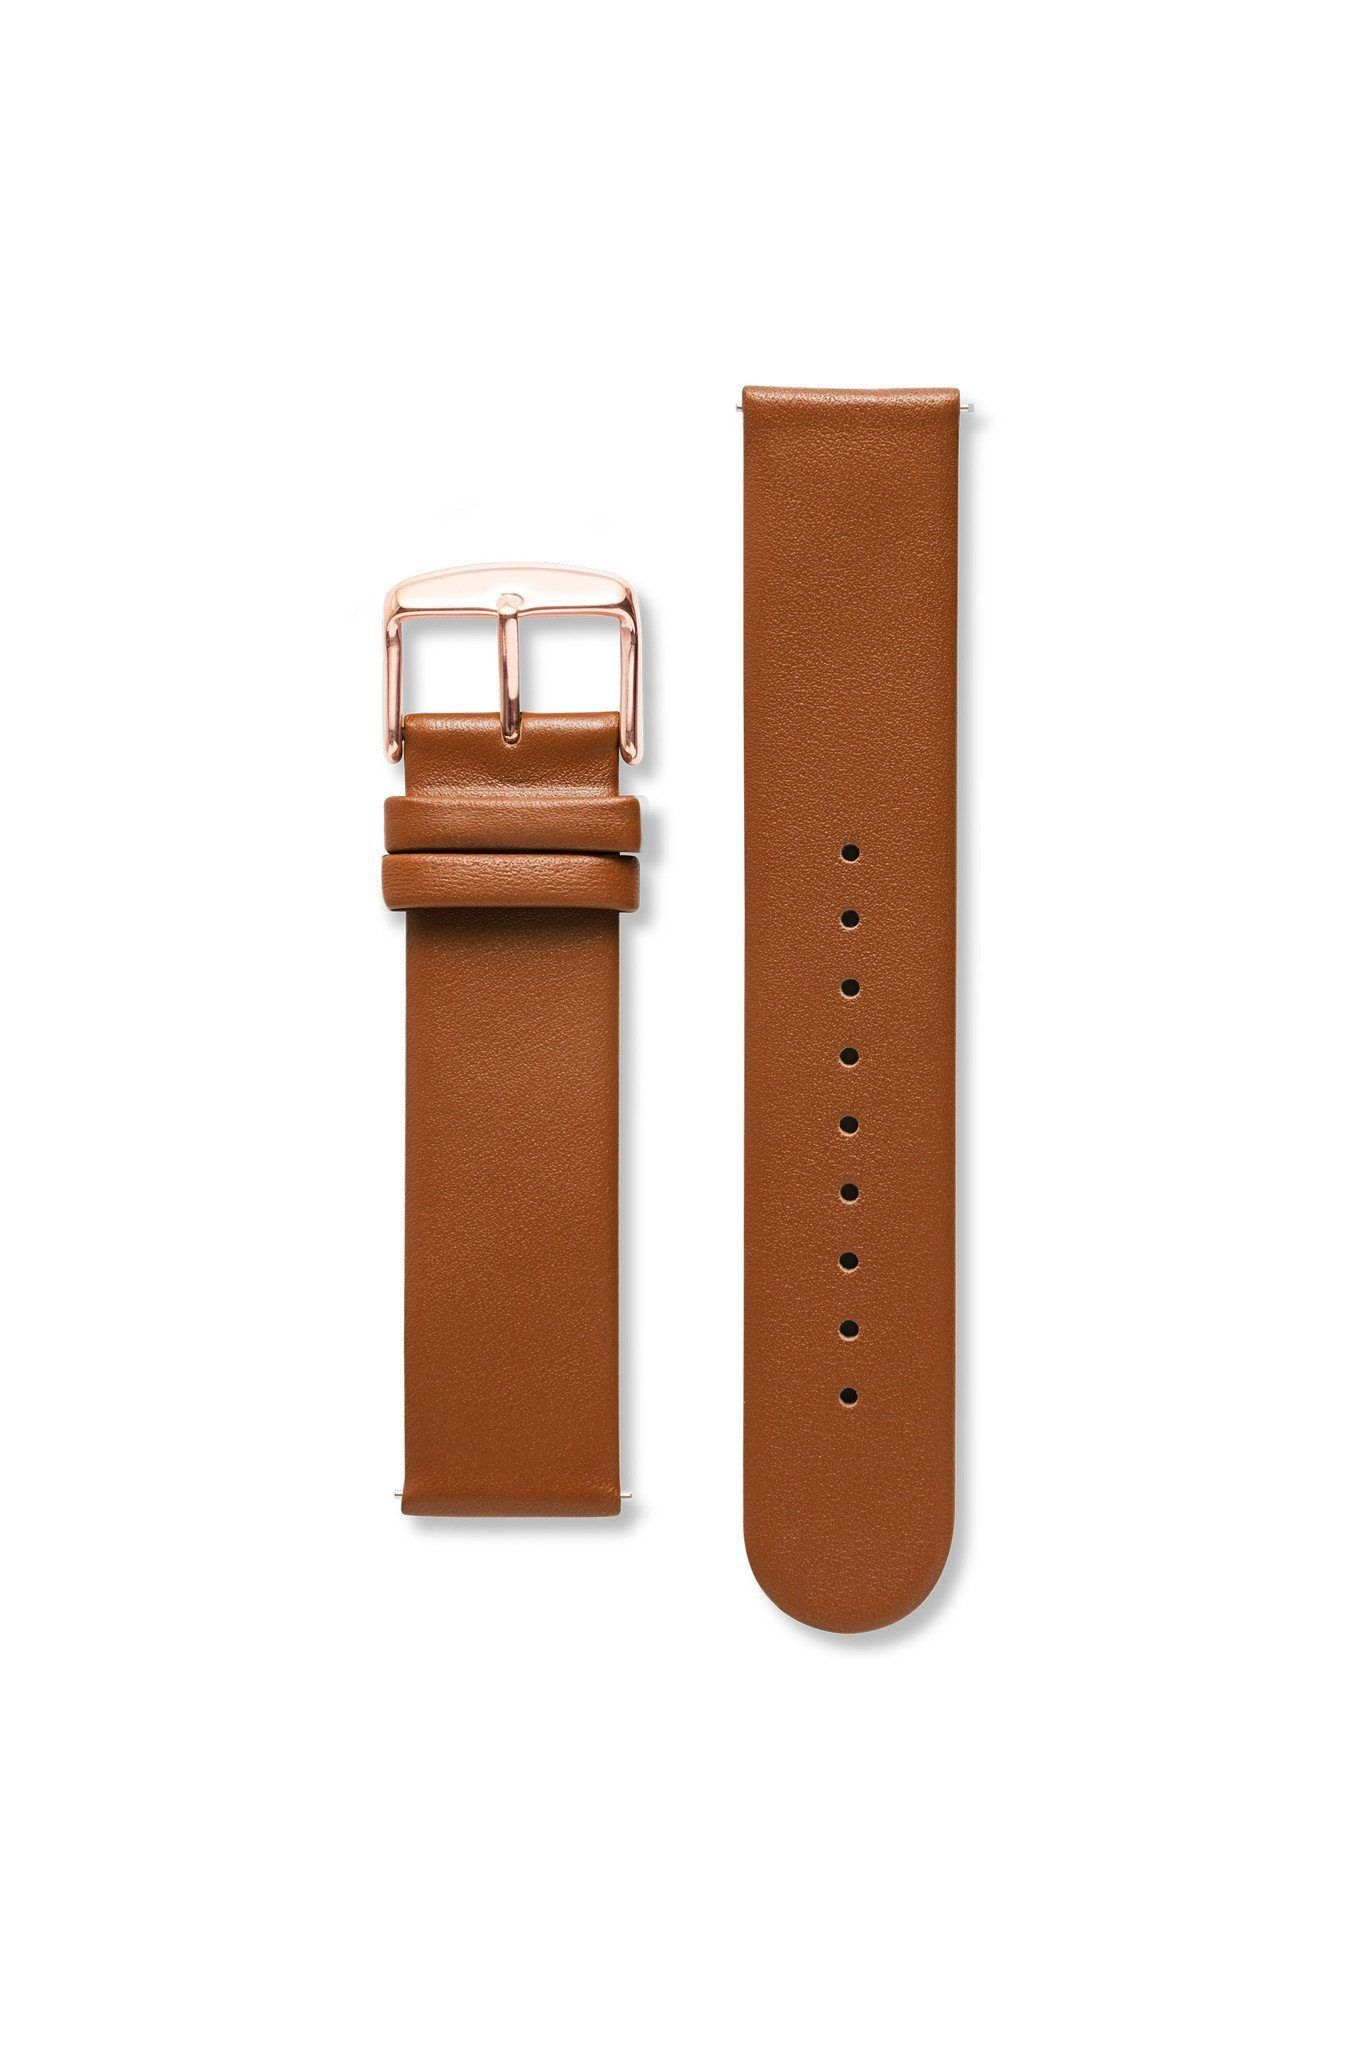 Strap - Genuine Leather Non-Stitch Brown/Rose Gold Strap